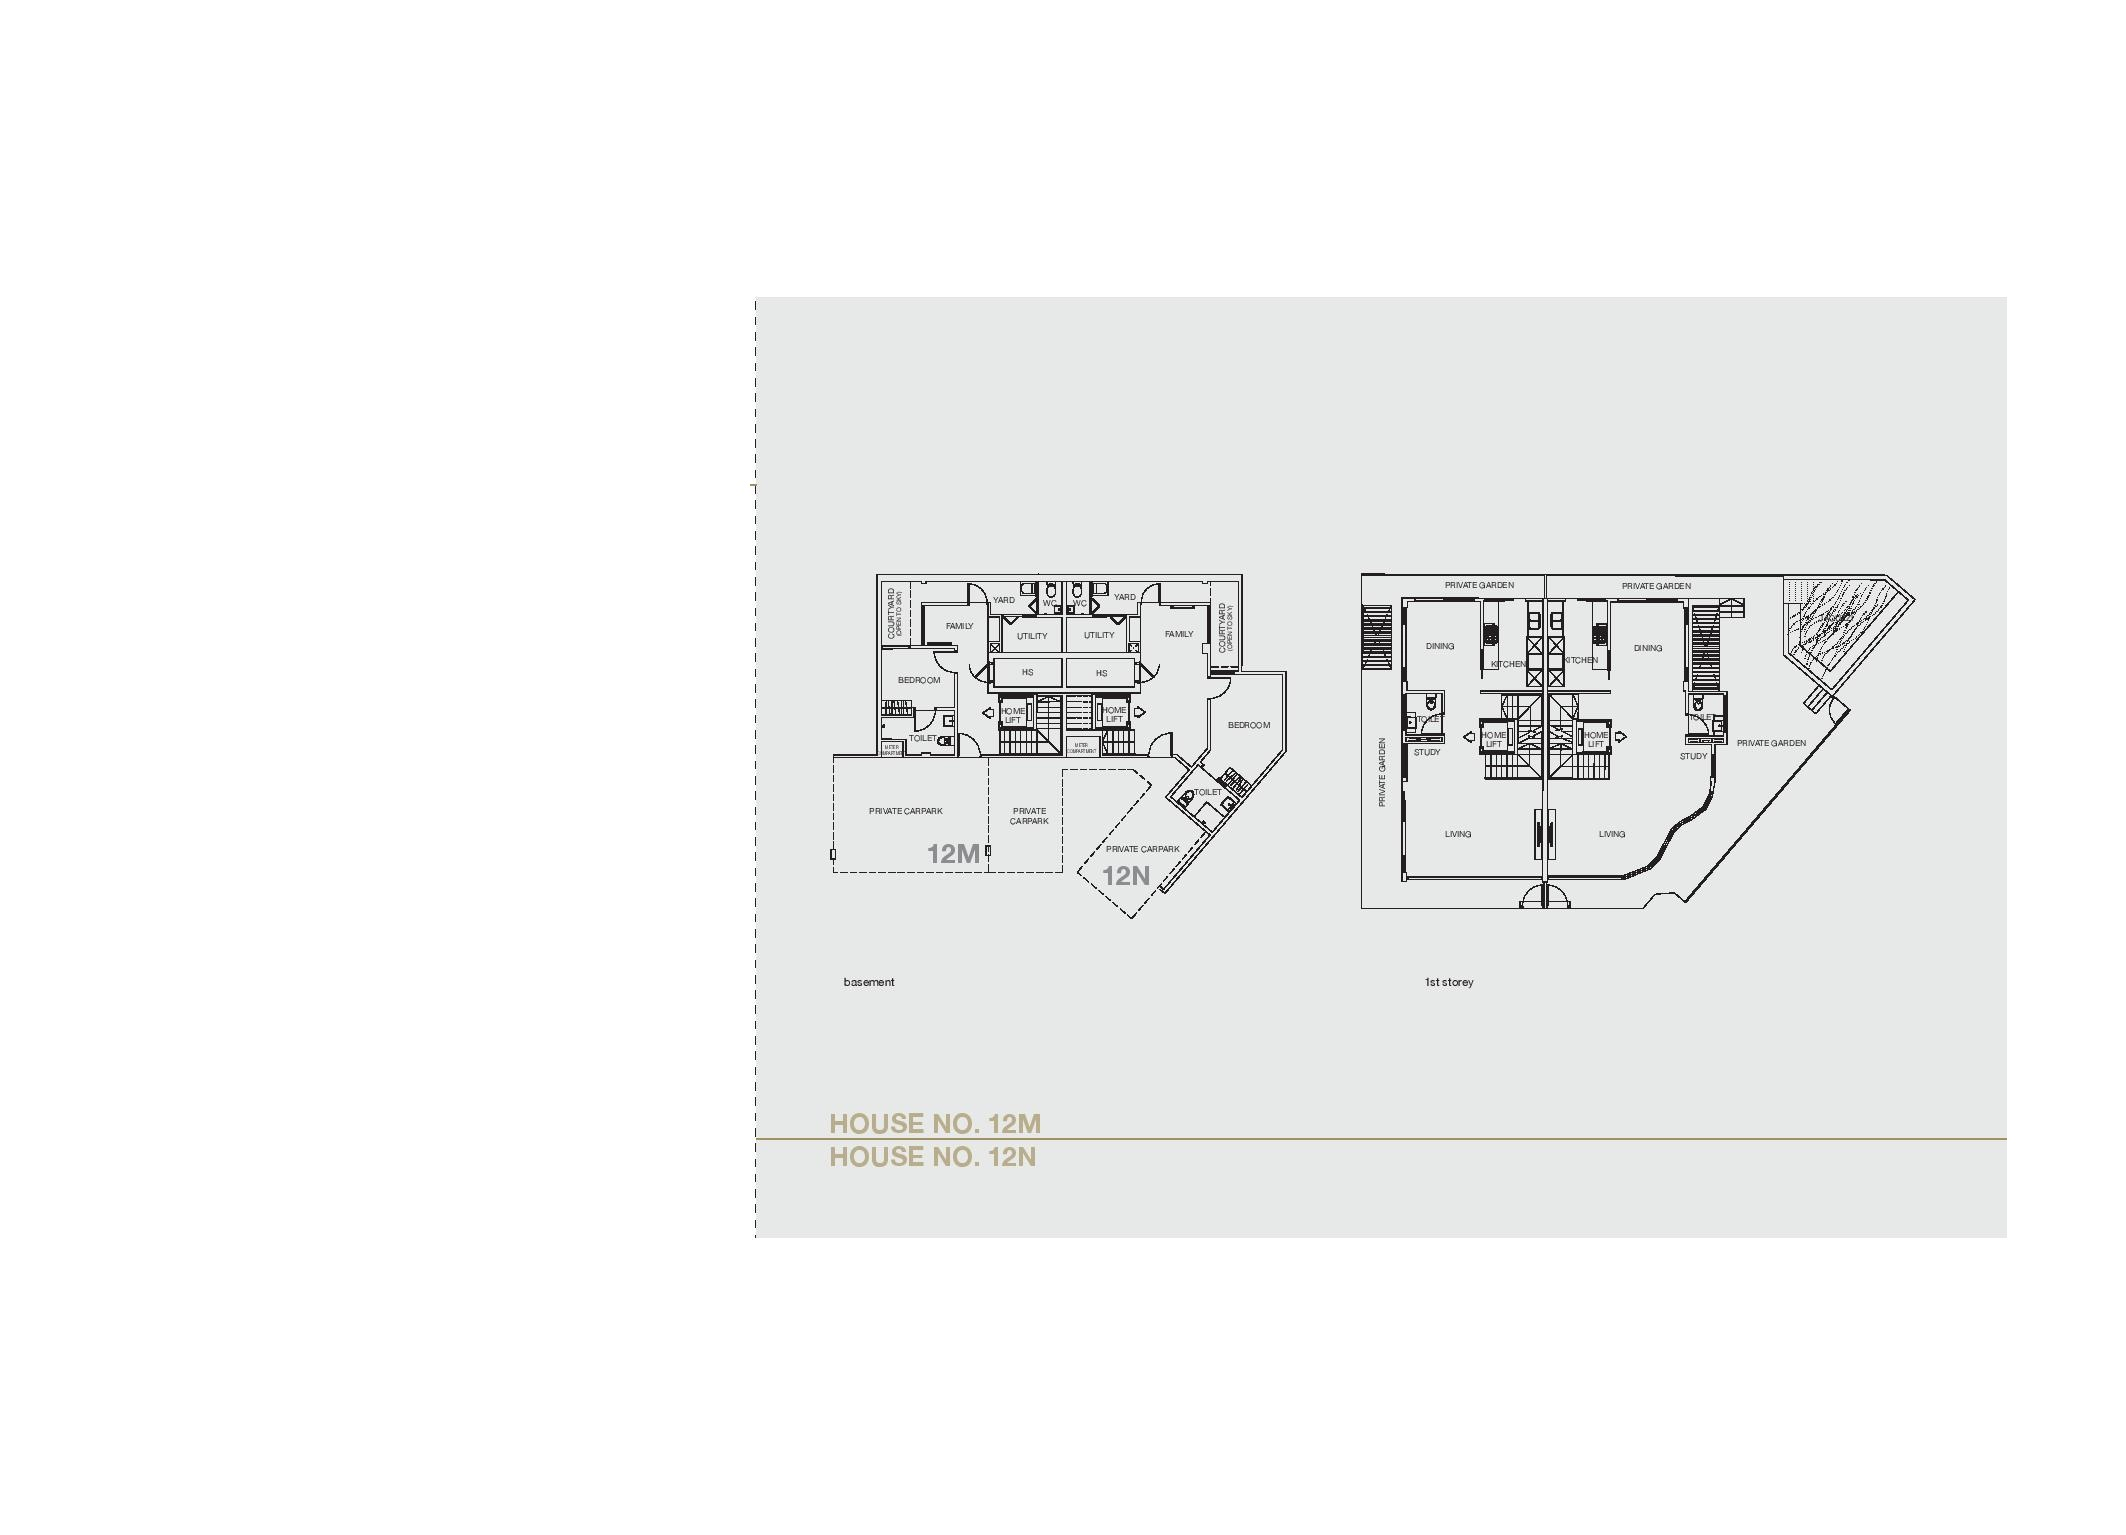 Chancery Hill Villas House 12M/12N Basement & 1st LevelFloor Plans